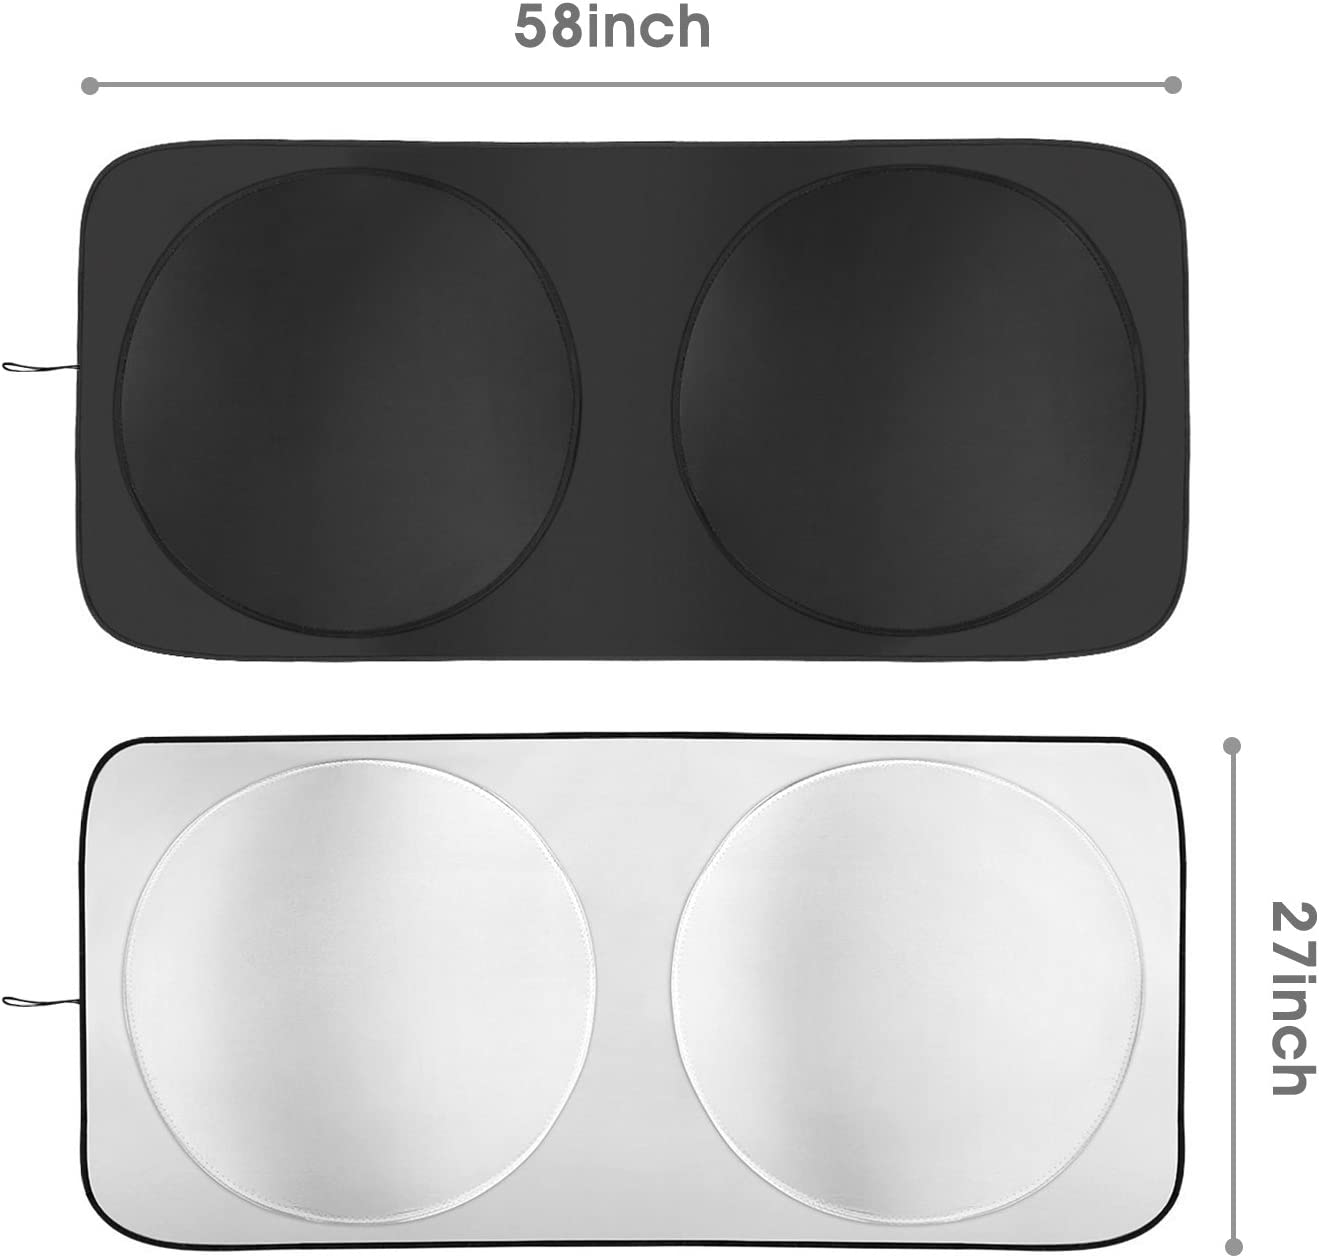 Sunshades for SUV Truck Car Windshield Cover Car Windshield Sun Shade Universal Fit GearLiv Windshield Shade Ford F150 Front Windshield Window